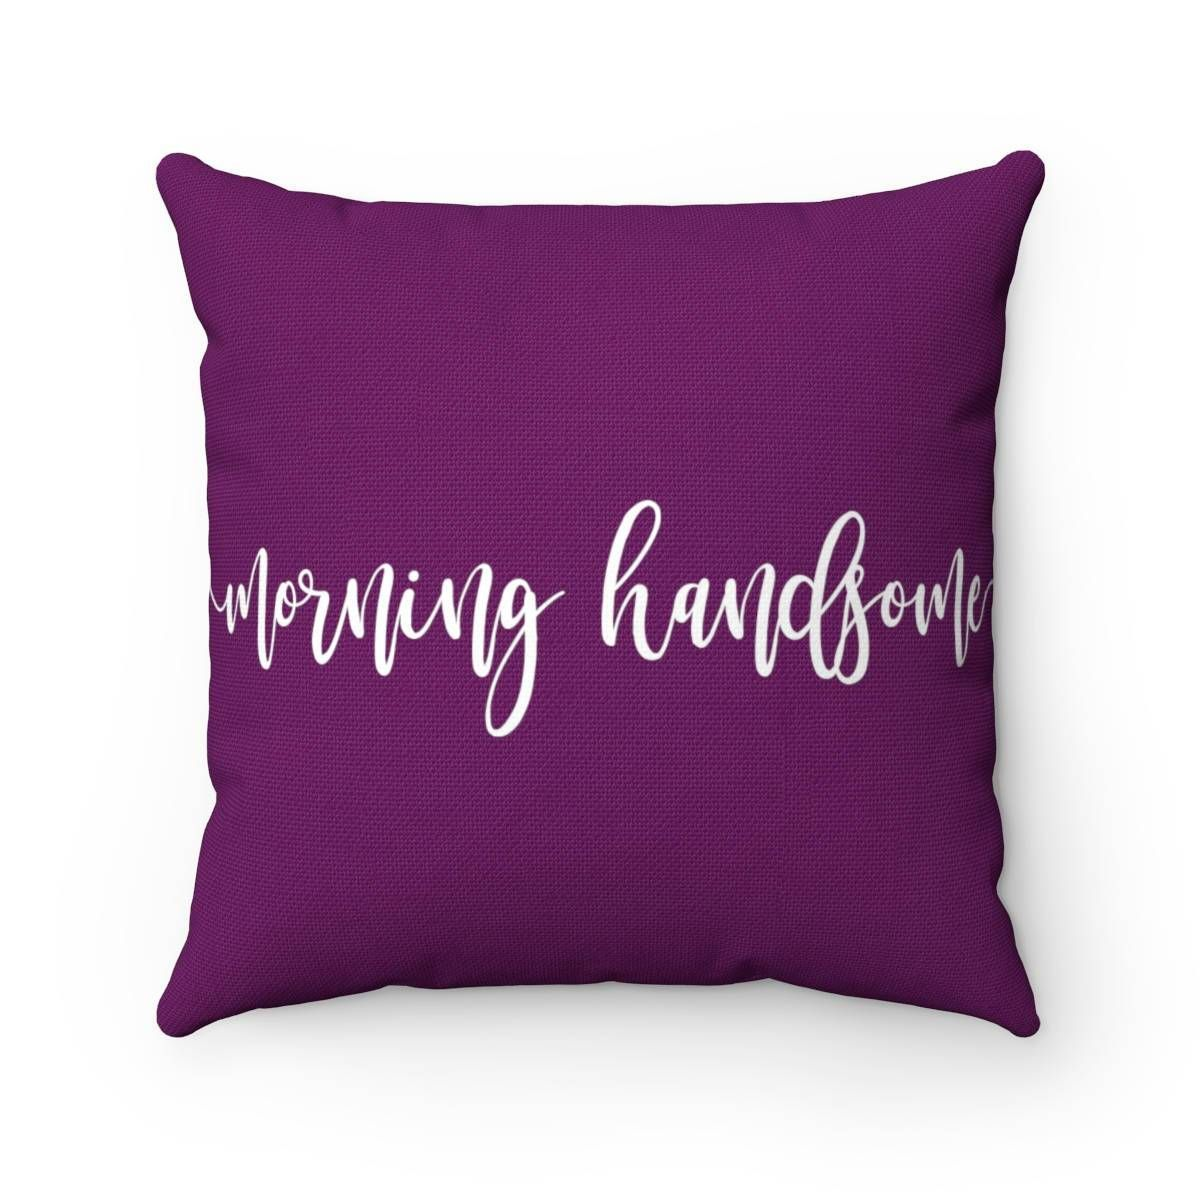 Morning handsome boyfriend gift personalized pillow throw pillows